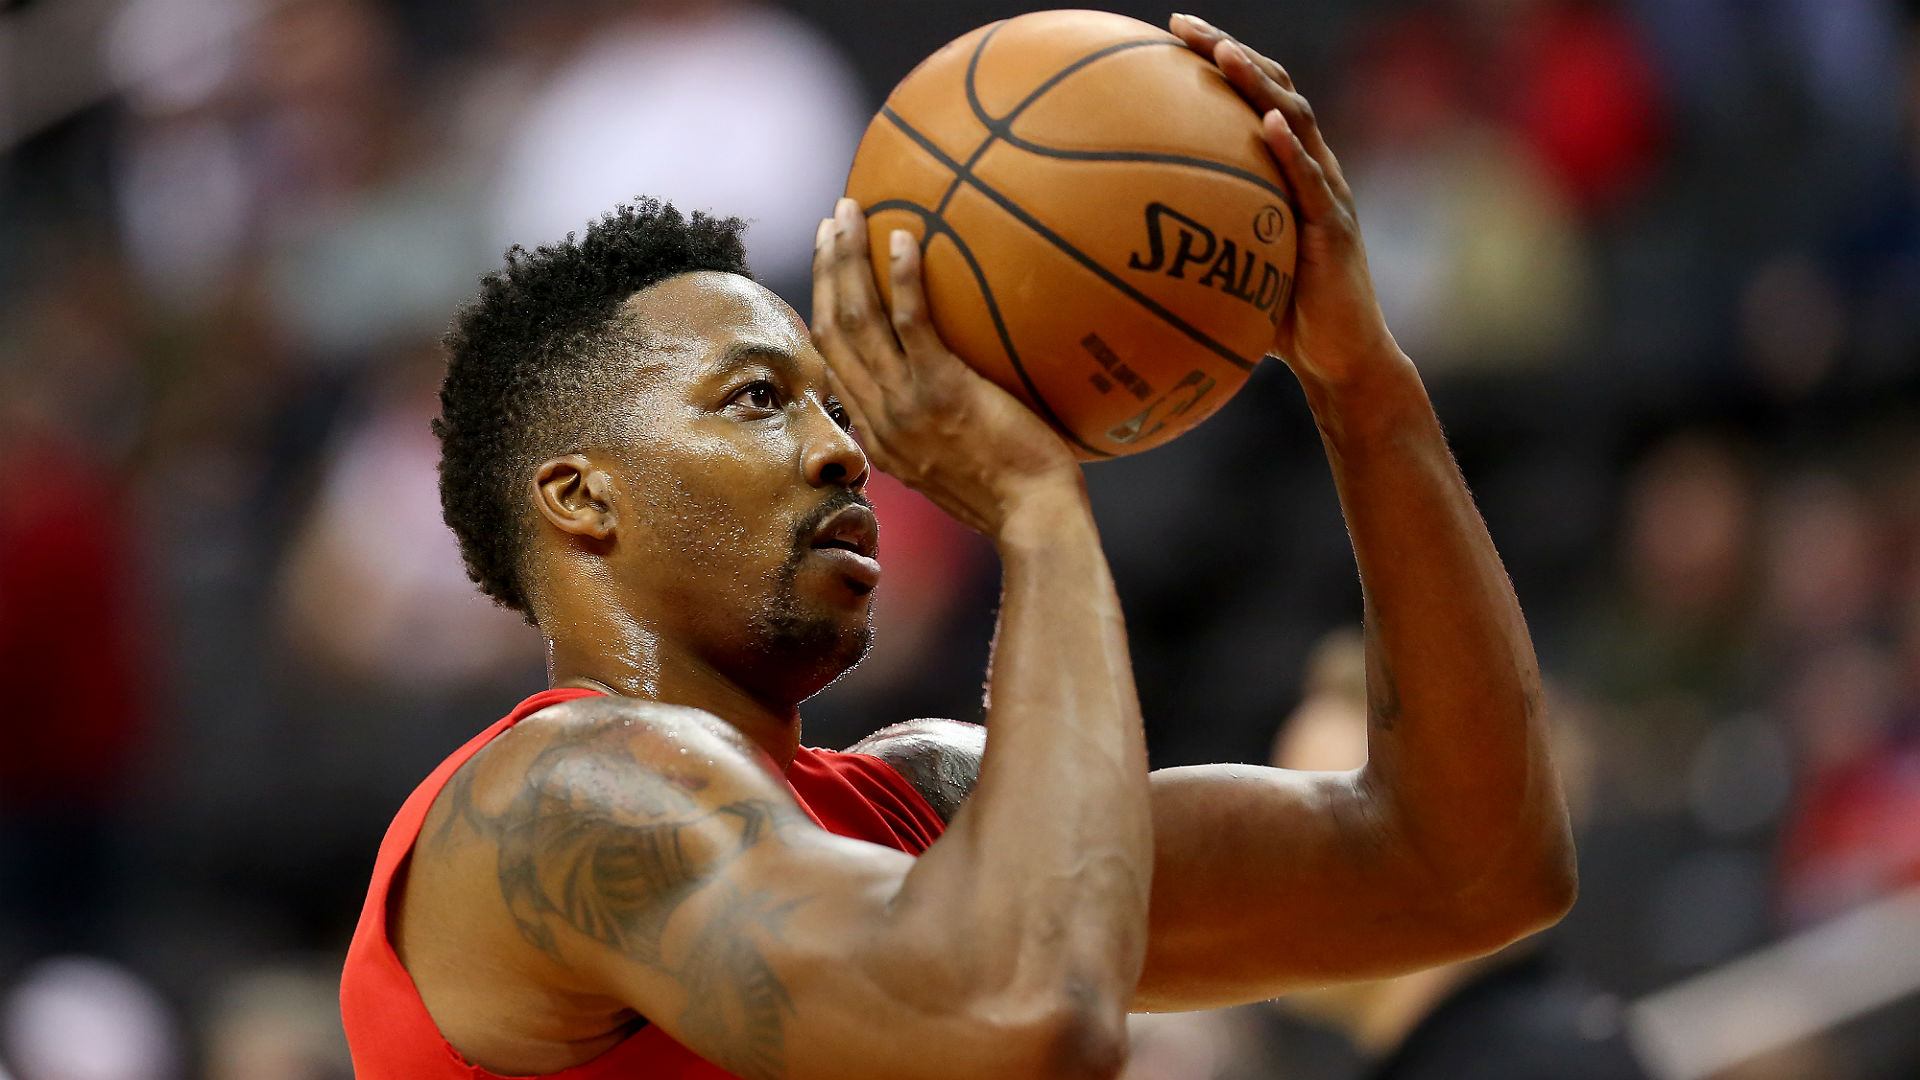 Lakers will pair Dwight Howard with LeBron James, Anthony Davis after center's Memphis buyout, report says